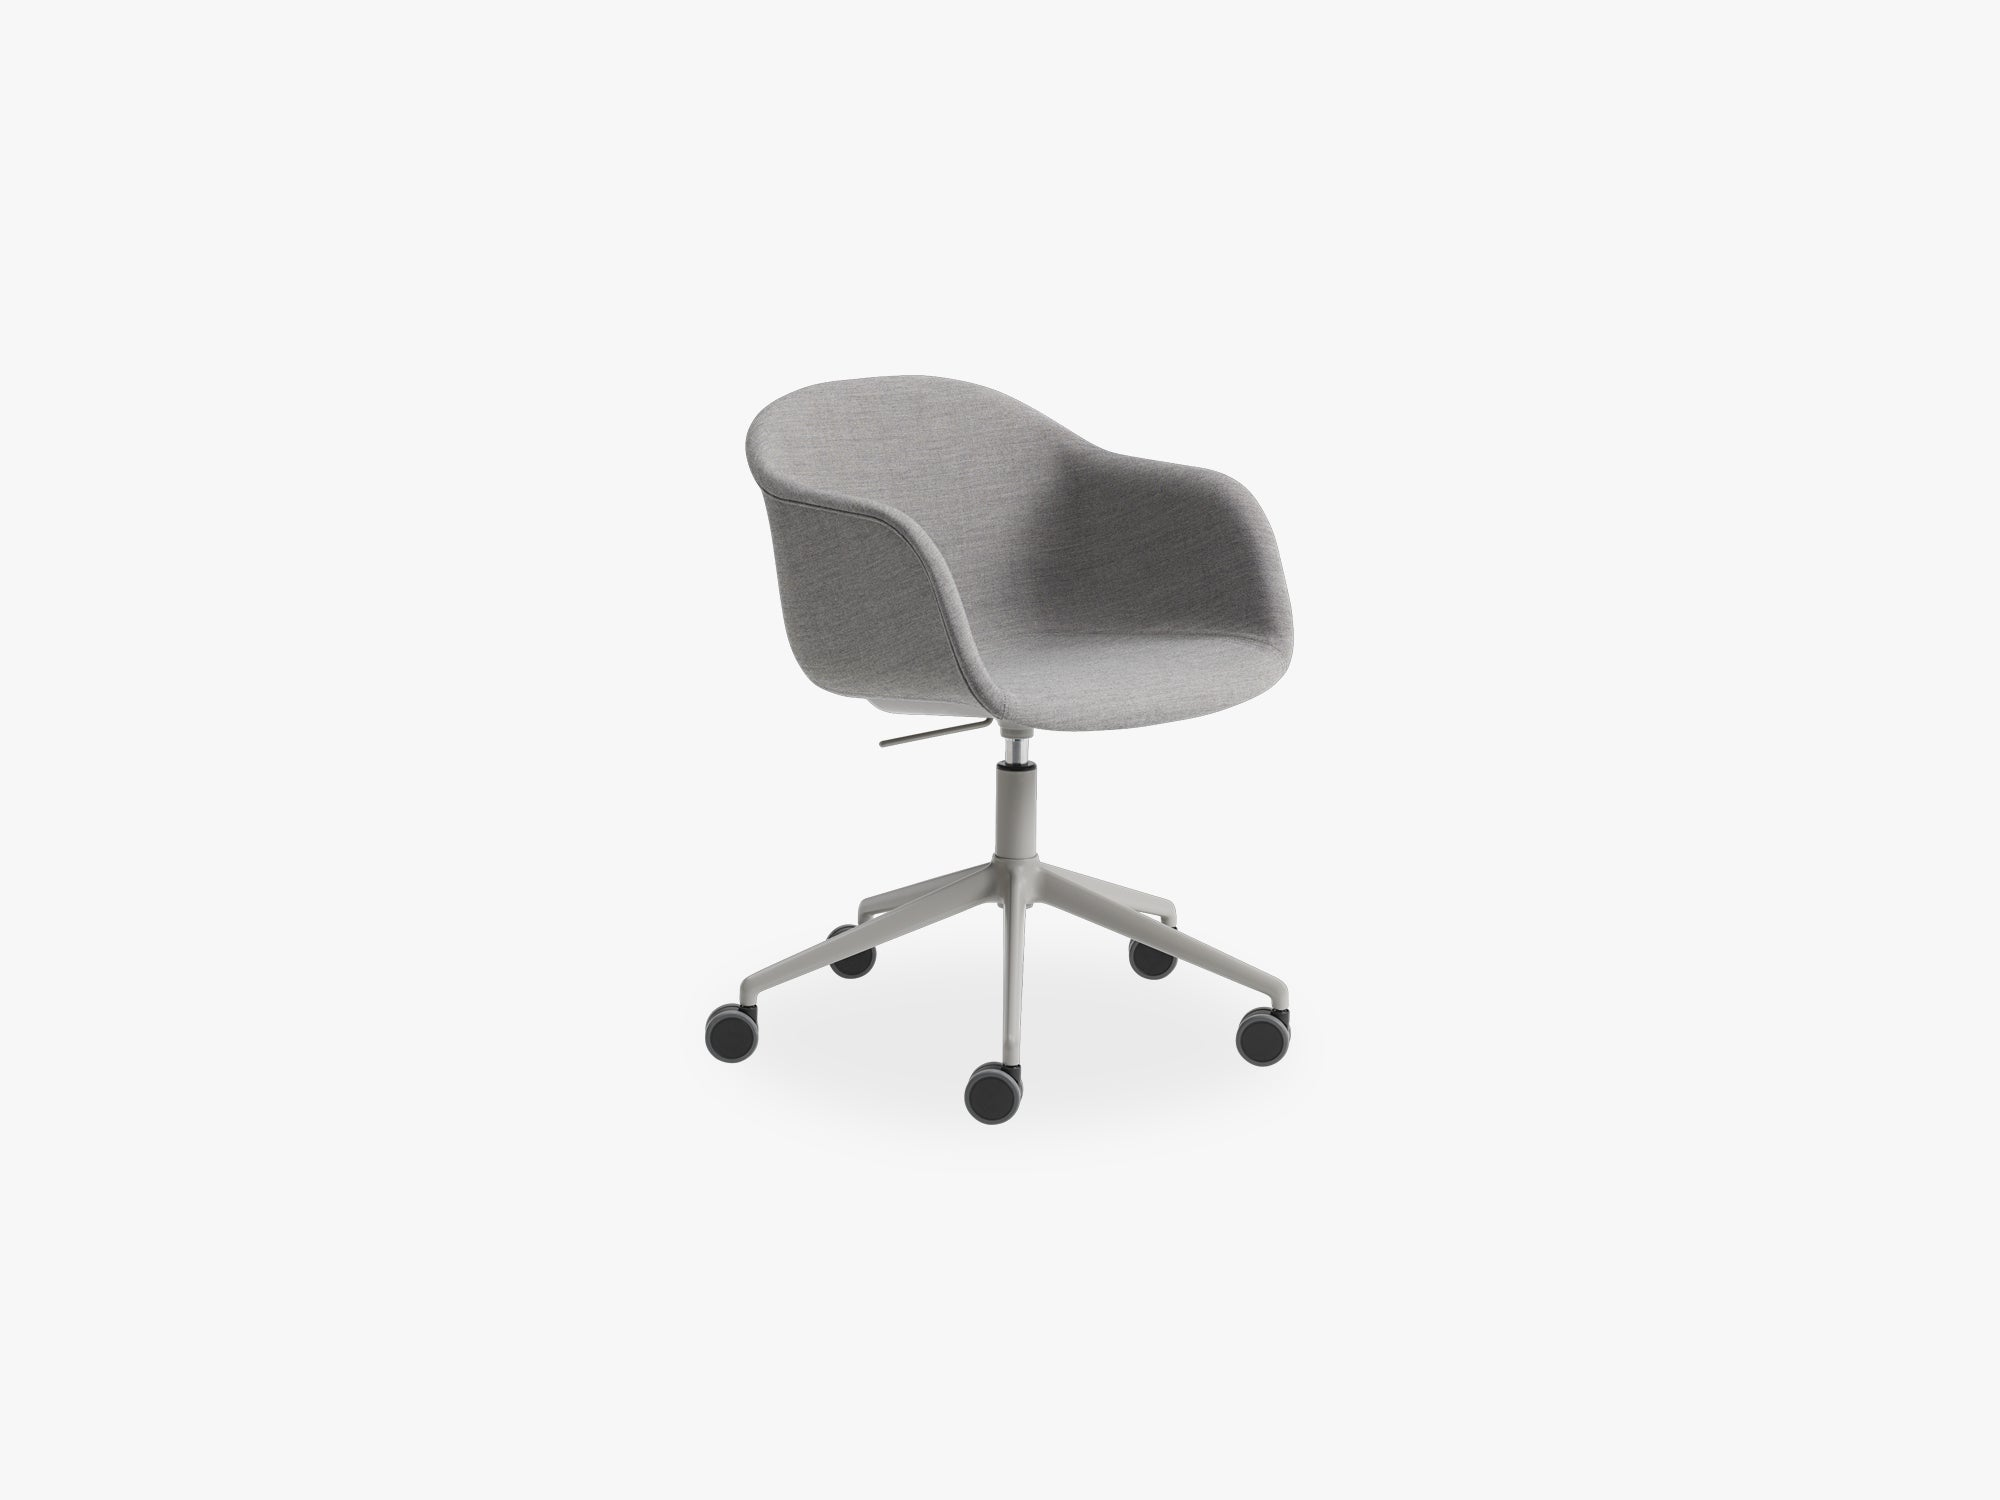 Fiber Armchair - Swivel Base W Castors & Gas Lift fra Muuto